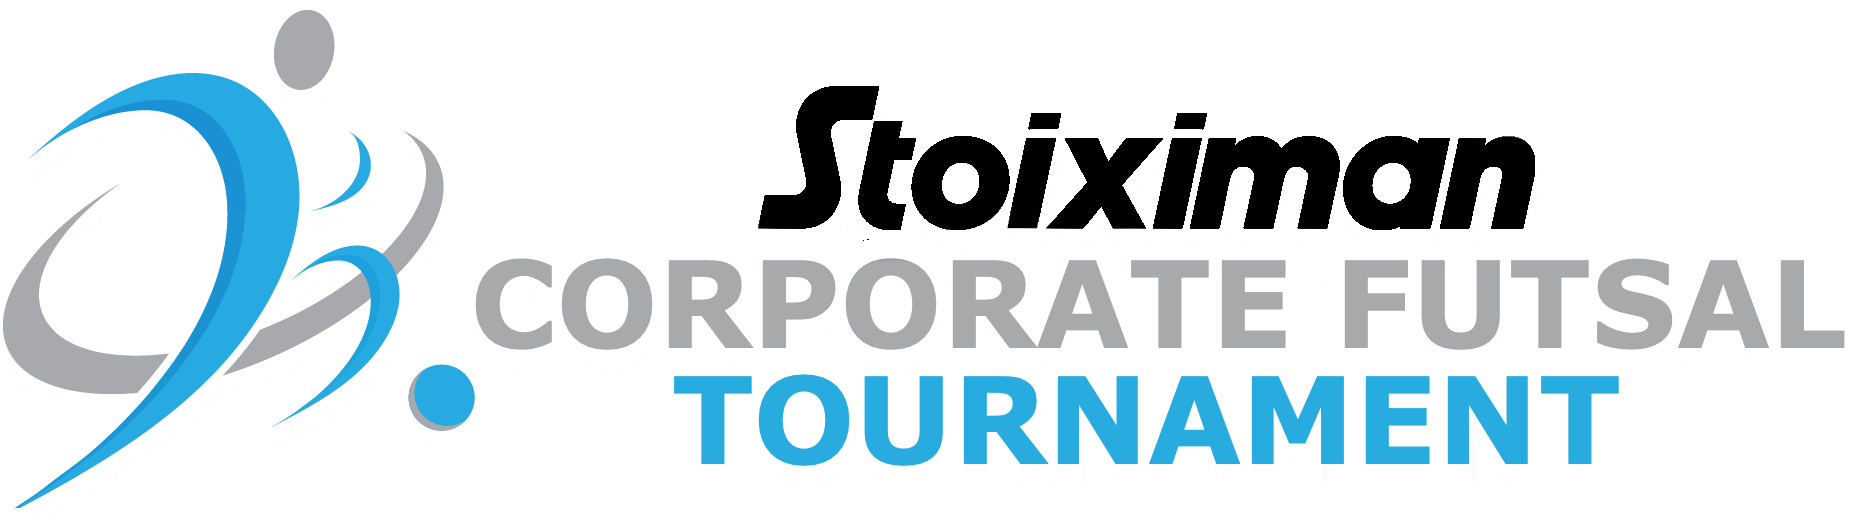 Corporate Futsal Tournament